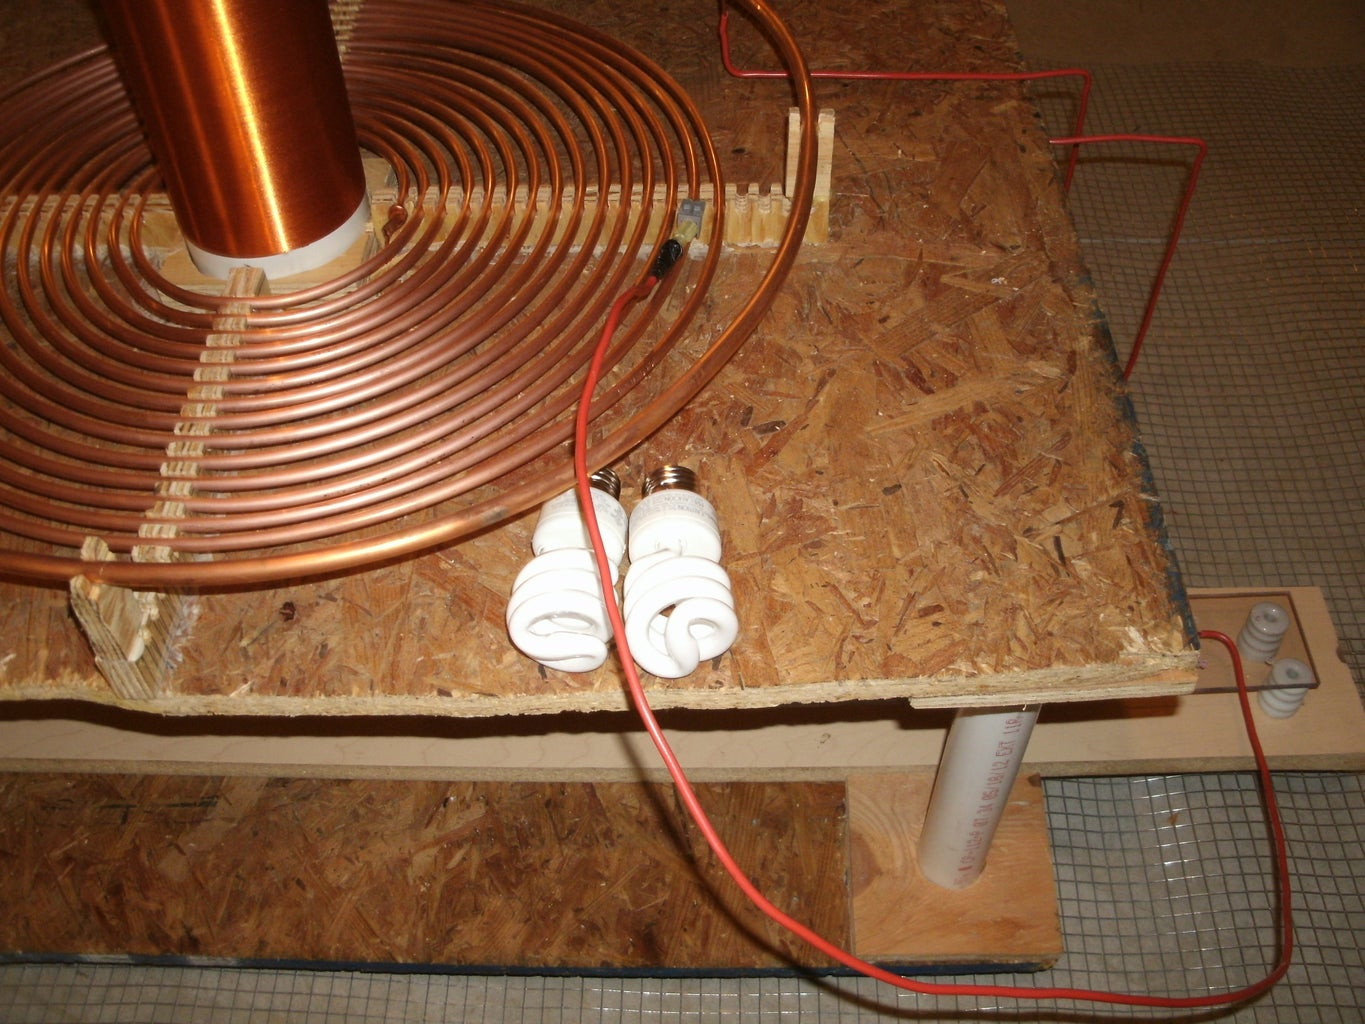 The Primary Coil